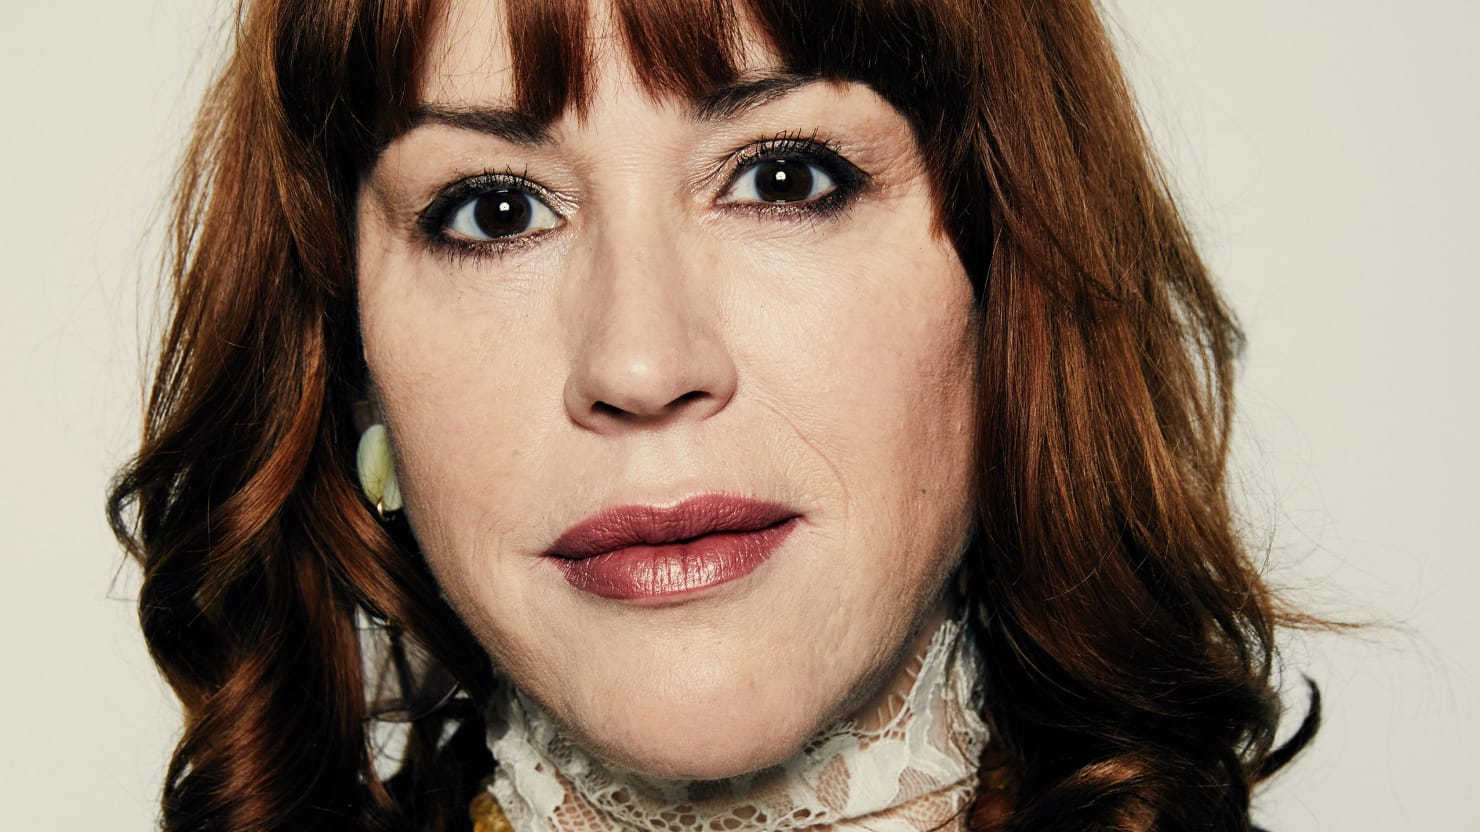 why molly ringwald spoke out about john hughes and #metoo: 'things